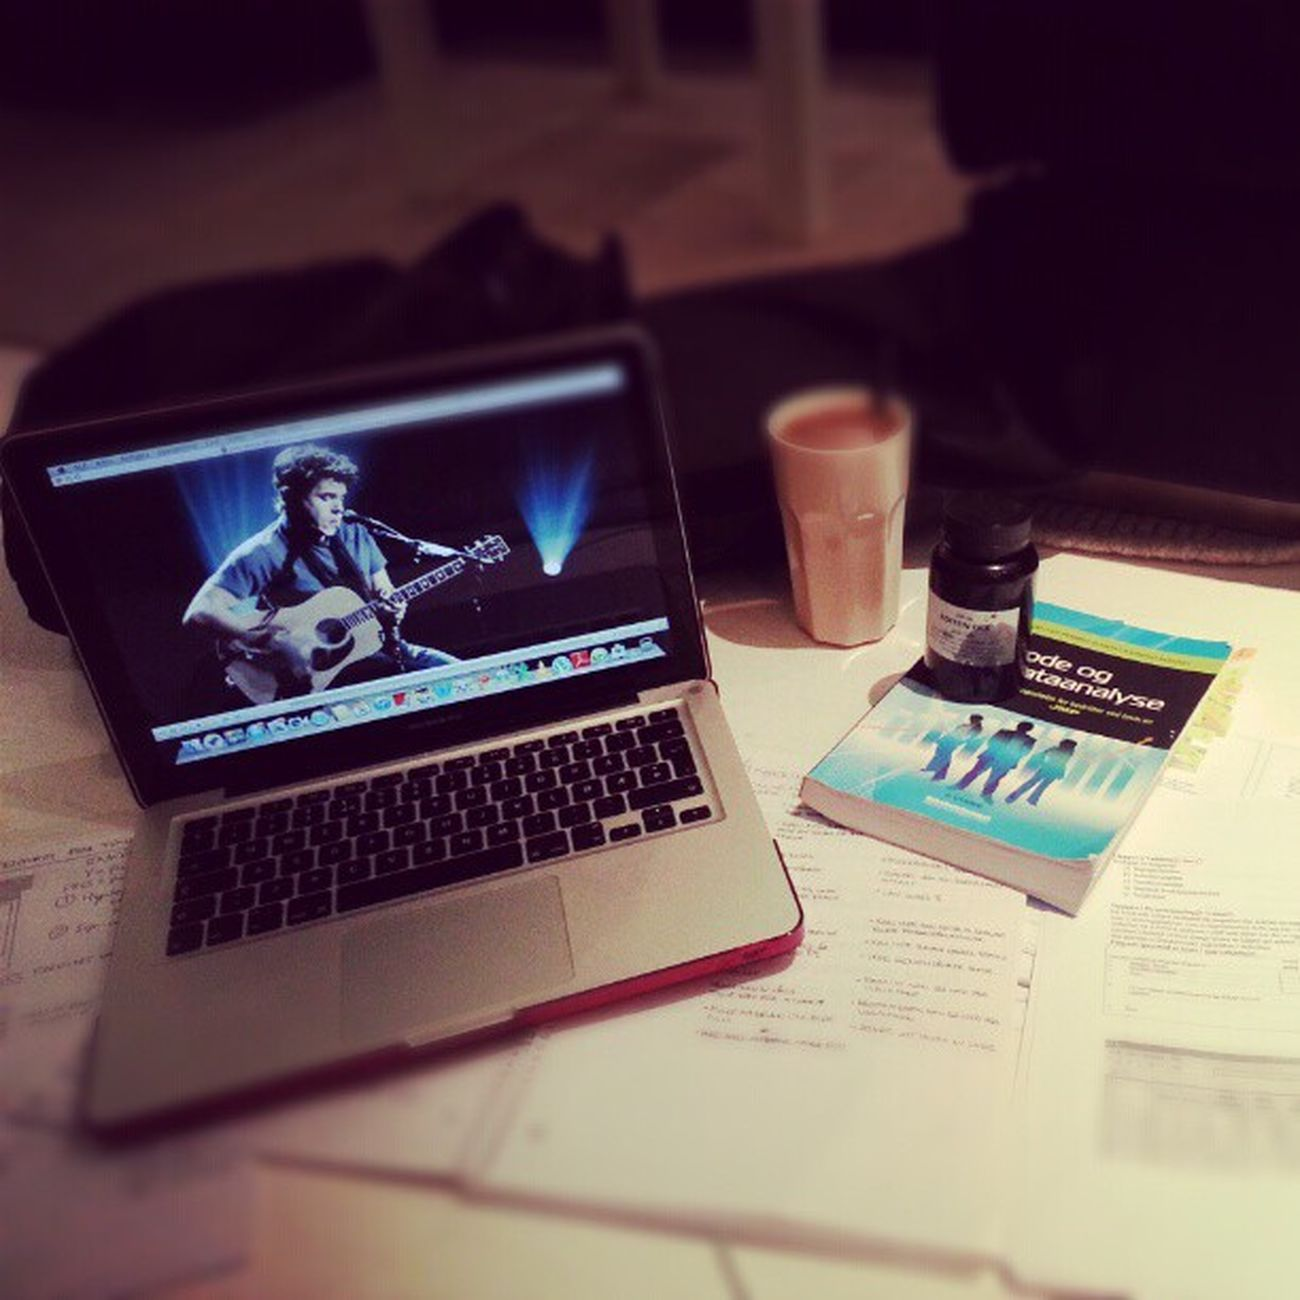 Examen tre. Dag fyra. 4am Johnmayer Methods and Data analysis koffein kick I want my life back